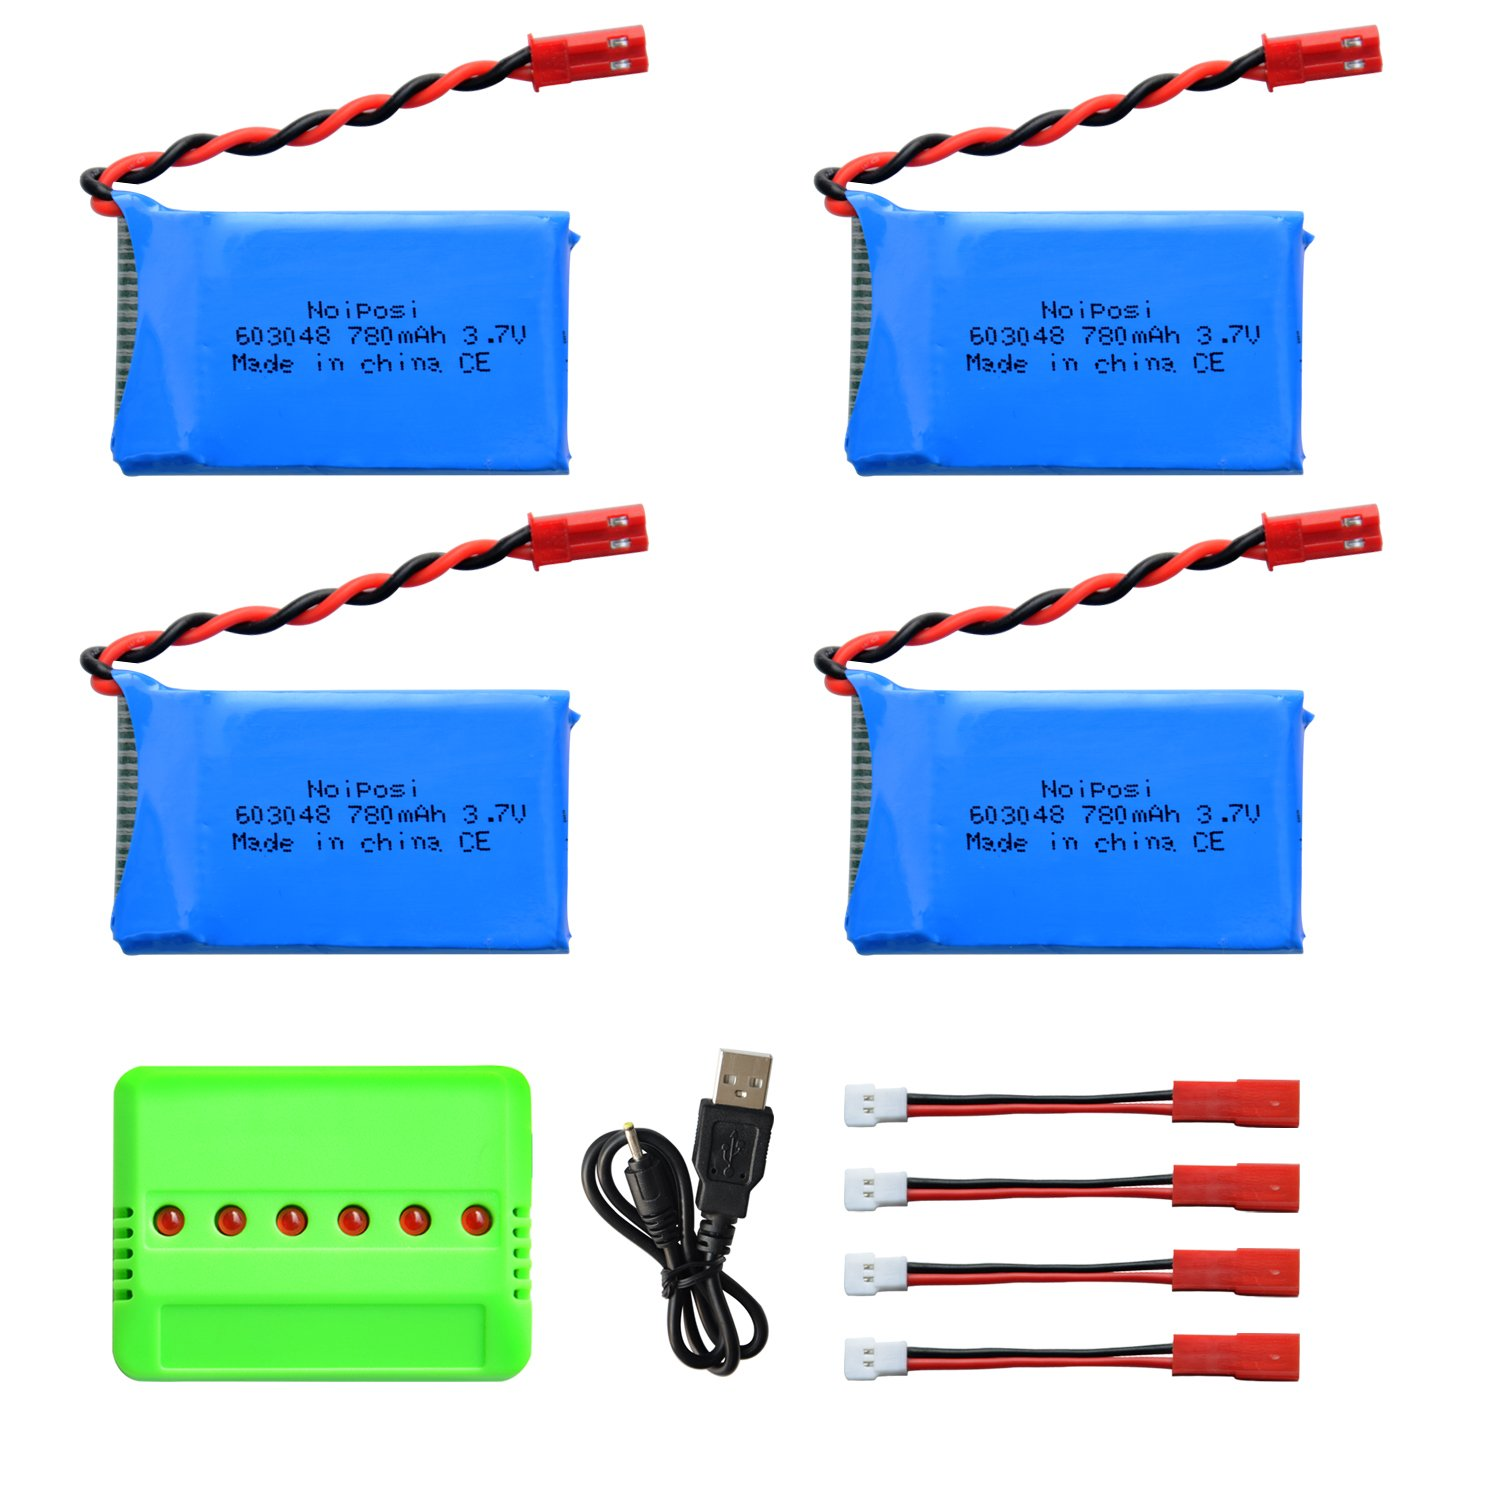 Noiposi 4pcs 3.7V 780mAh 20C Lipo Battery with X6 Charger for Wltoys V636 Quadcopter YiHuaXing